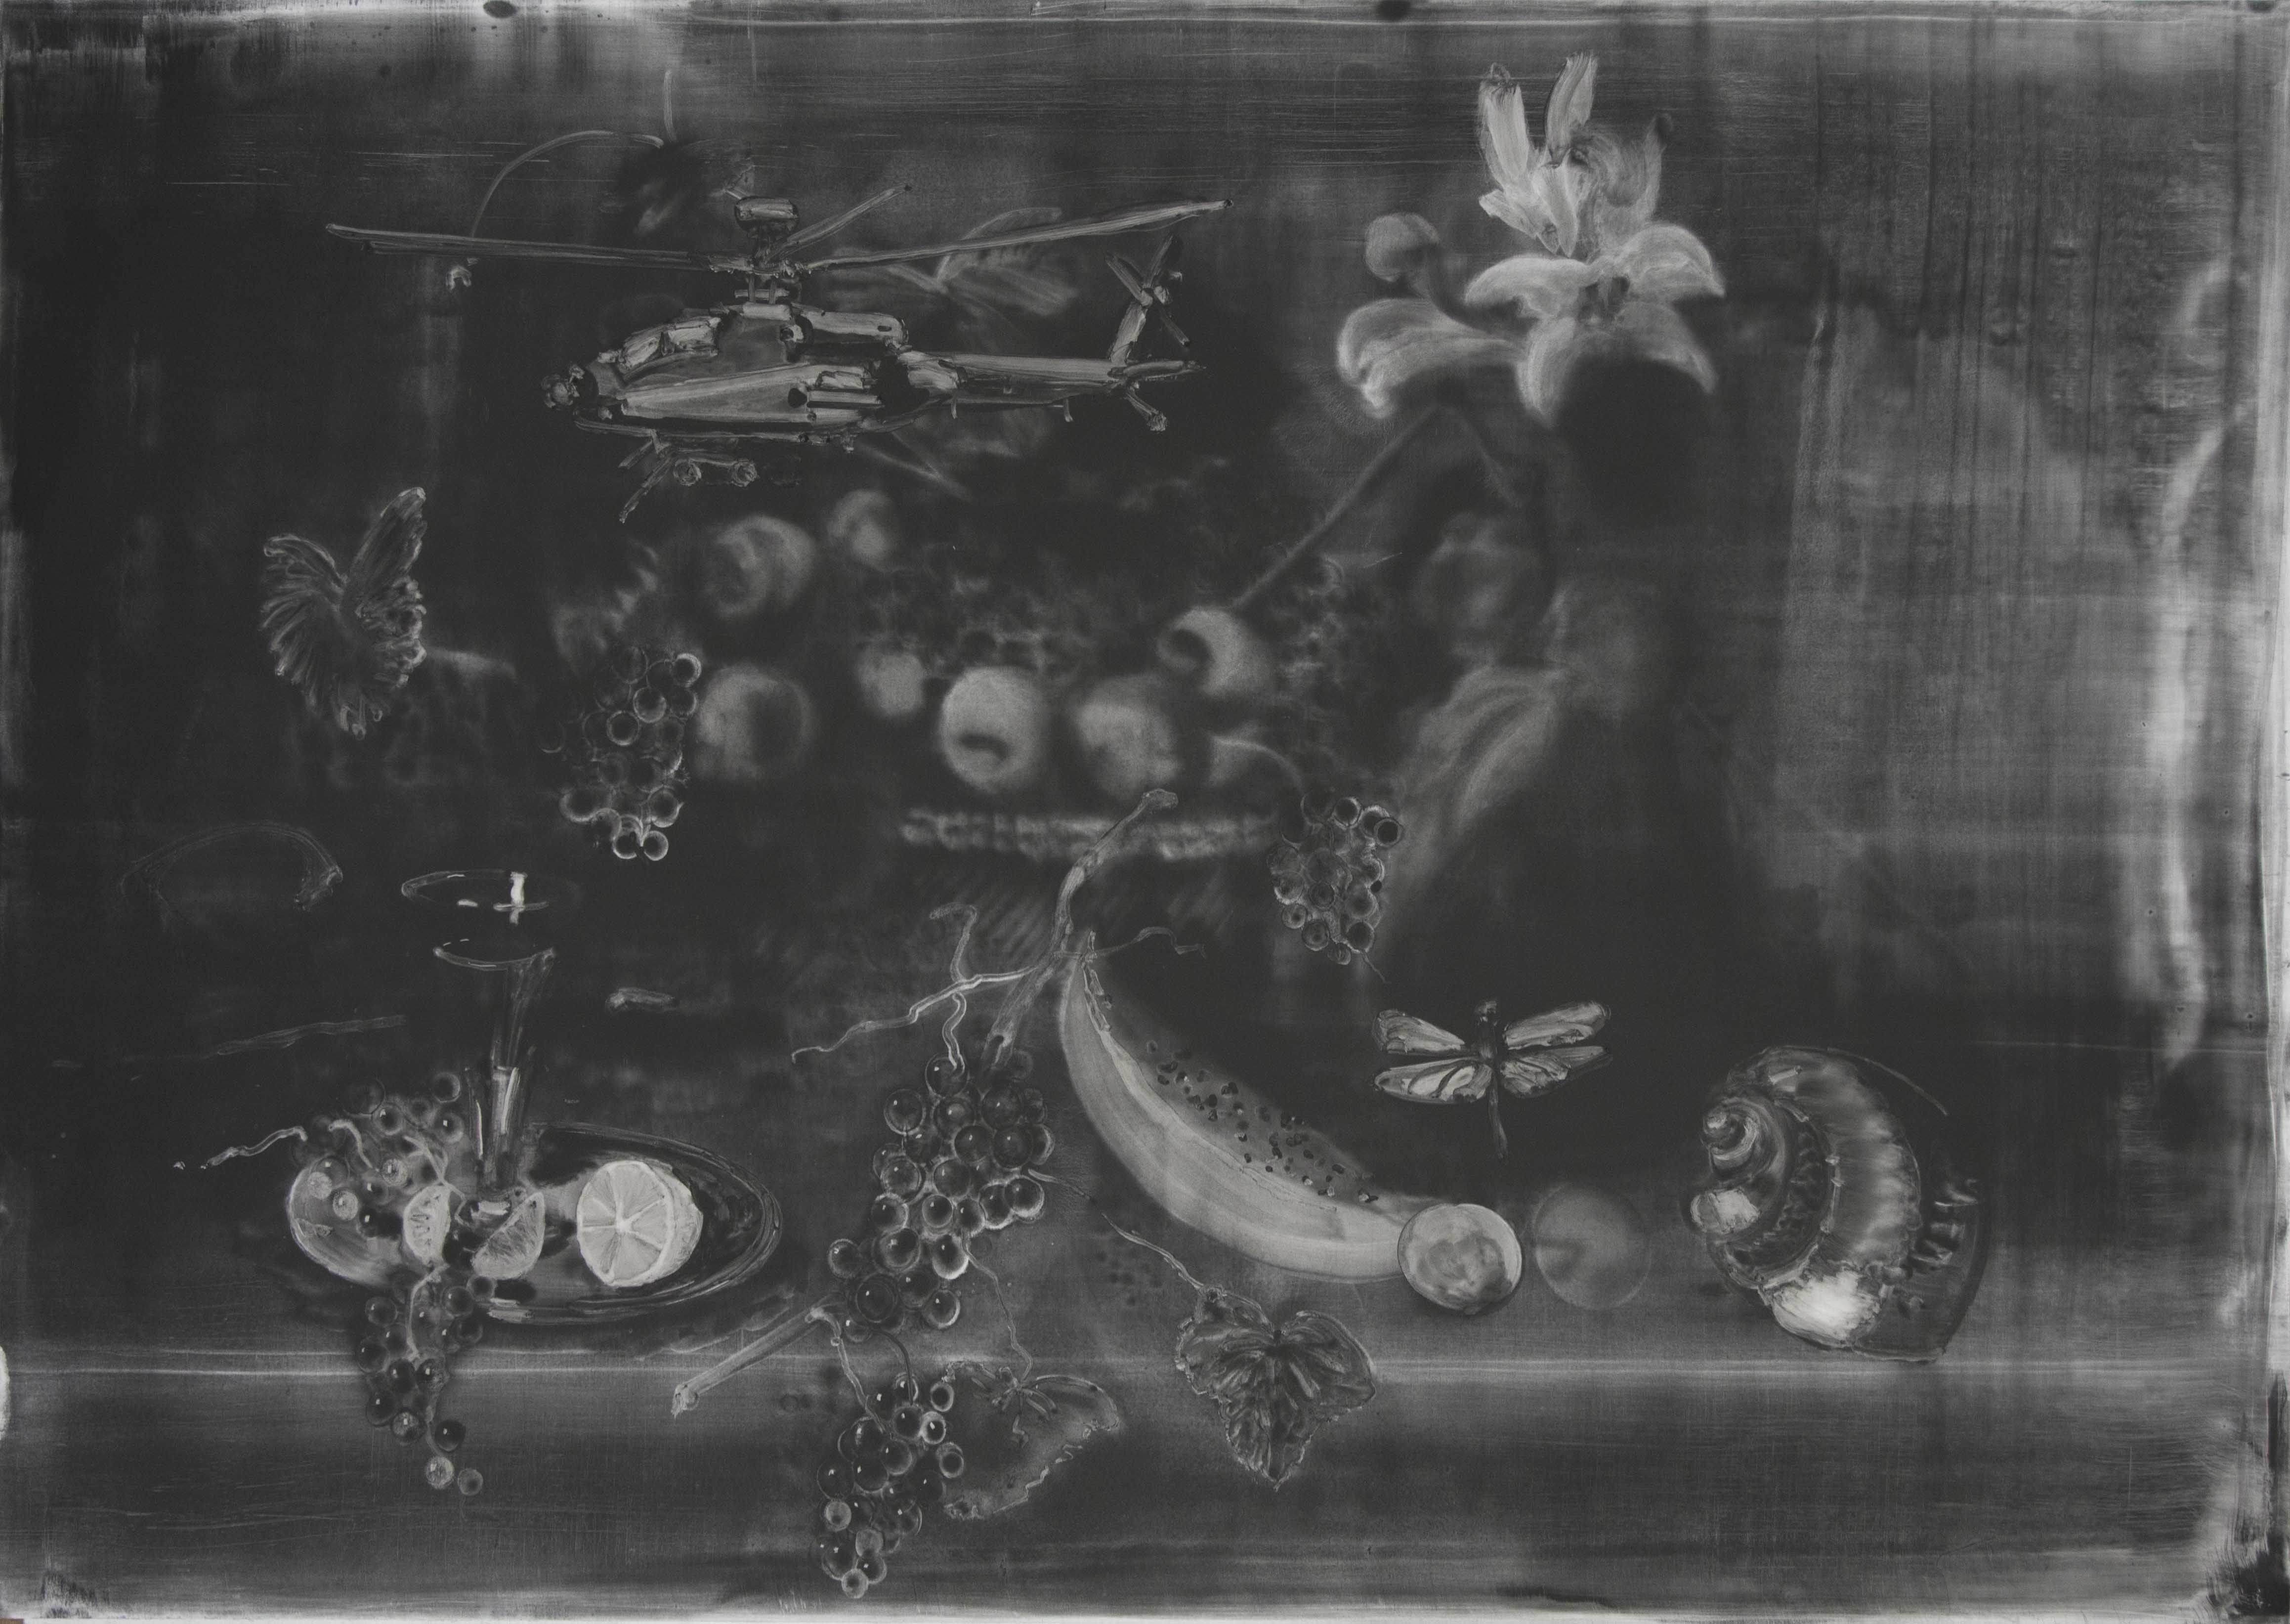 Christopher Cook 'Still life with dragonfly' graphite and oil on paper 72 x 102  2017